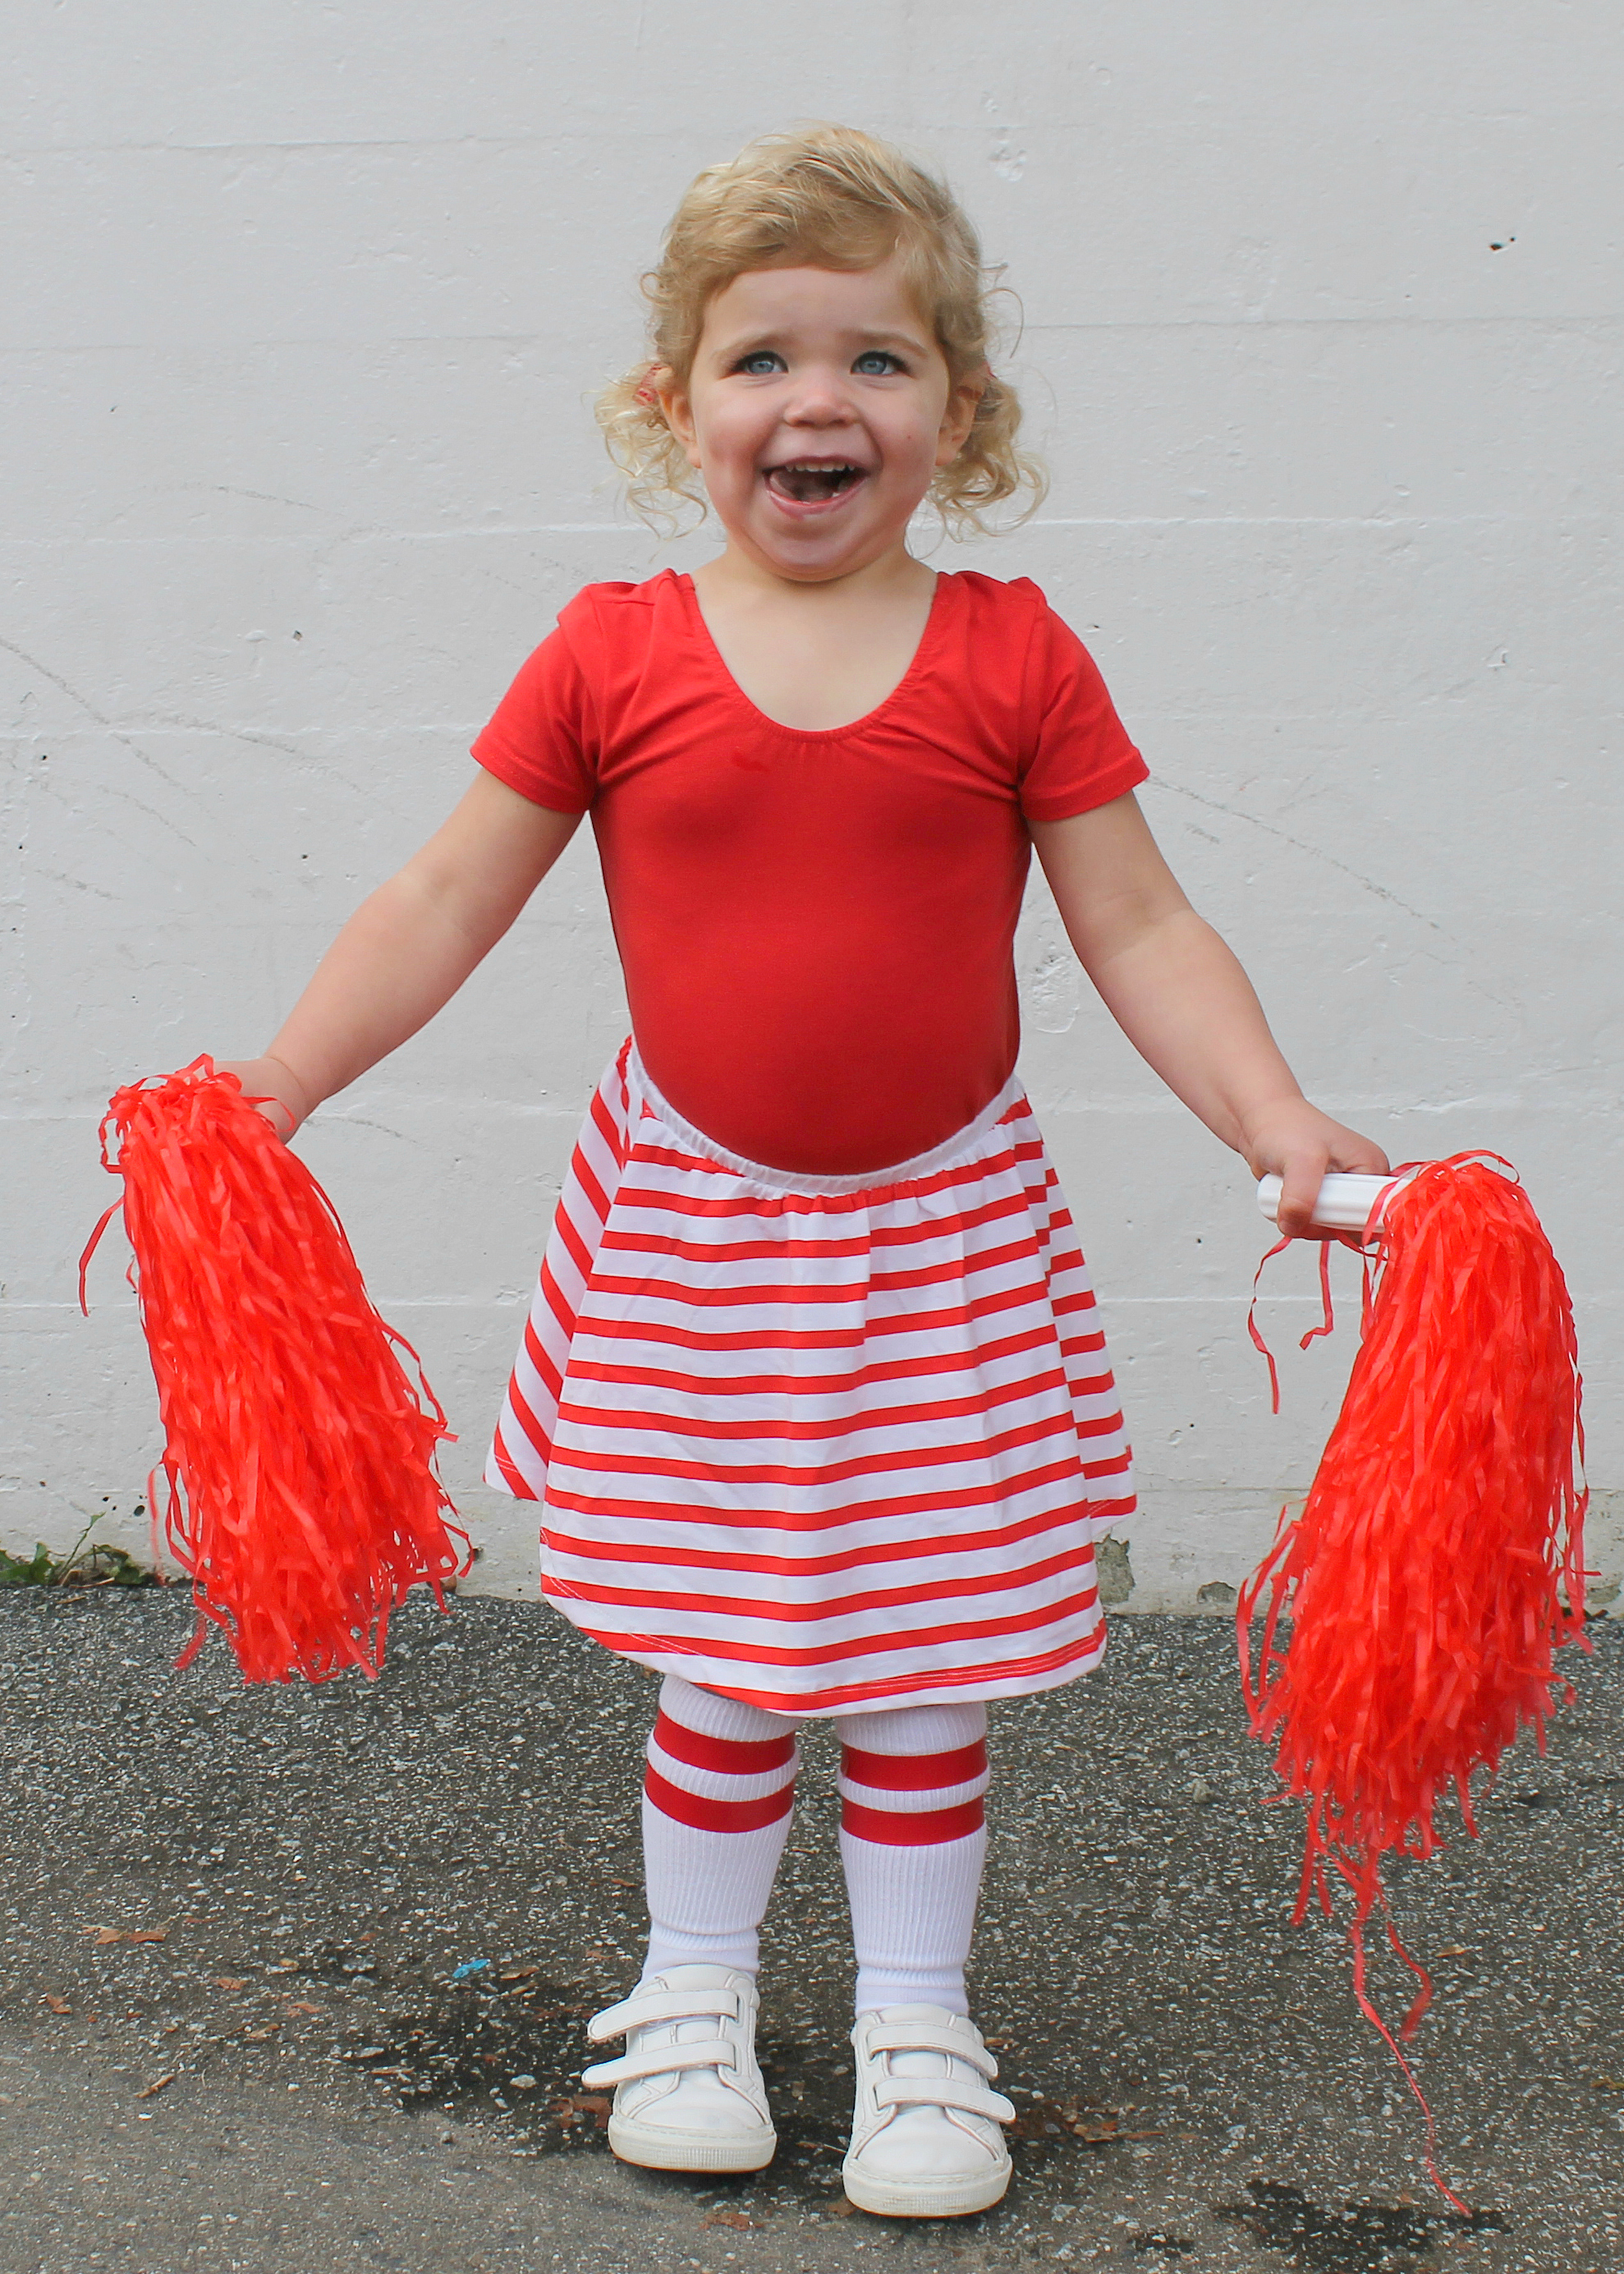 Family Halloween Costume Ideas | Group Costume Ideas | Kids Halloween Costumes | Football Cheerleader Costume  sc 1 st  This Sweet Happy Life & Fun Family Halloween Costumes - This Sweet Happy Life